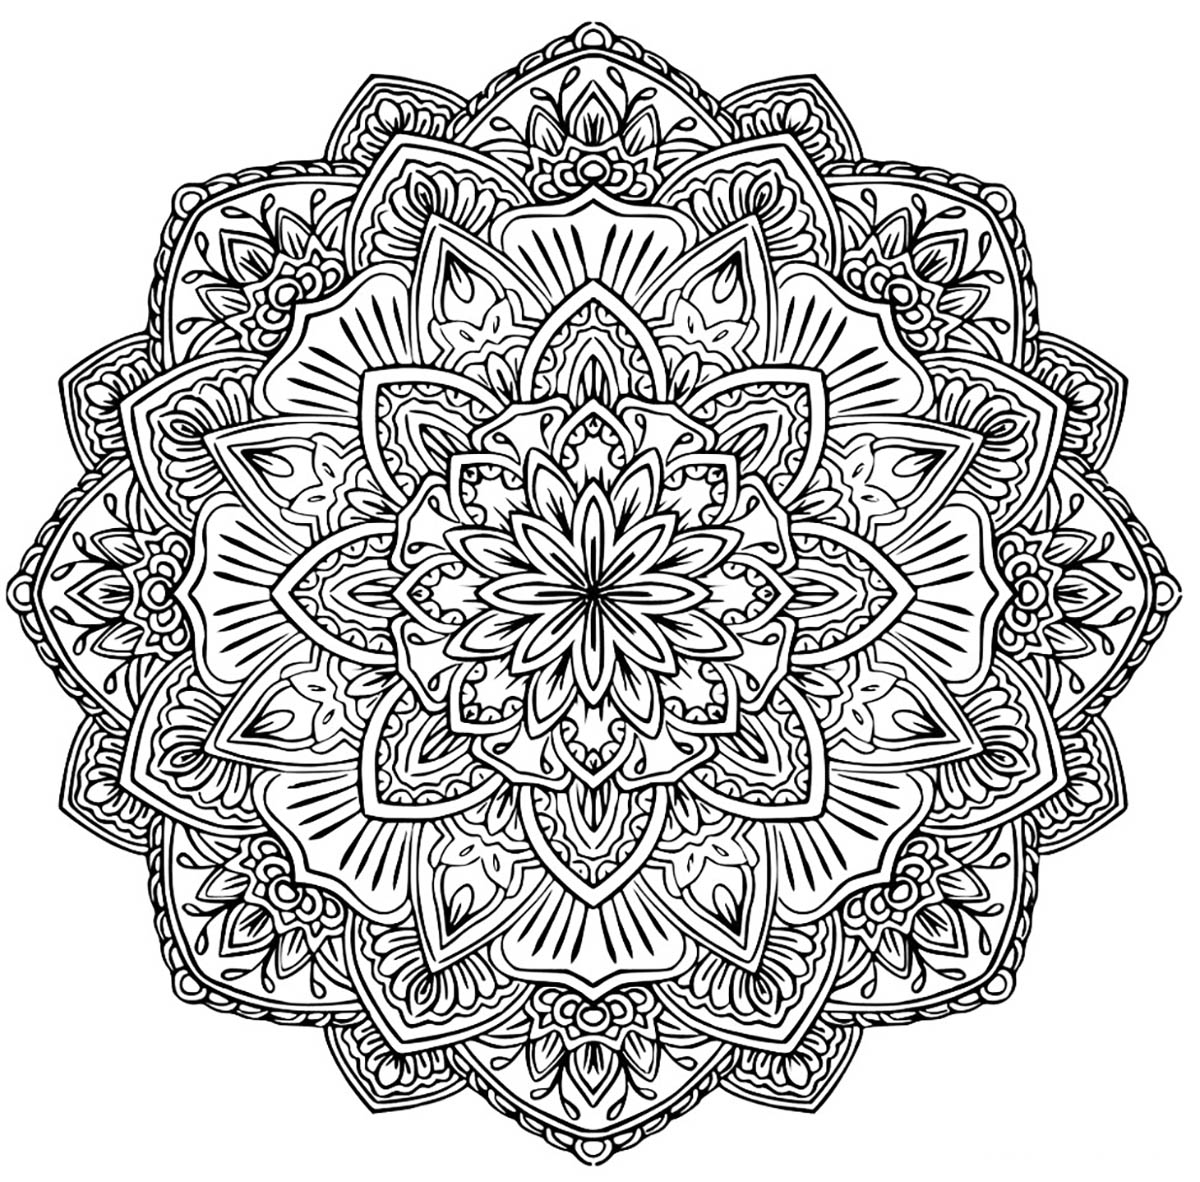 mandala adult coloring pages mandala for coloring cool coloring pages for adults adult mandala coloring pages